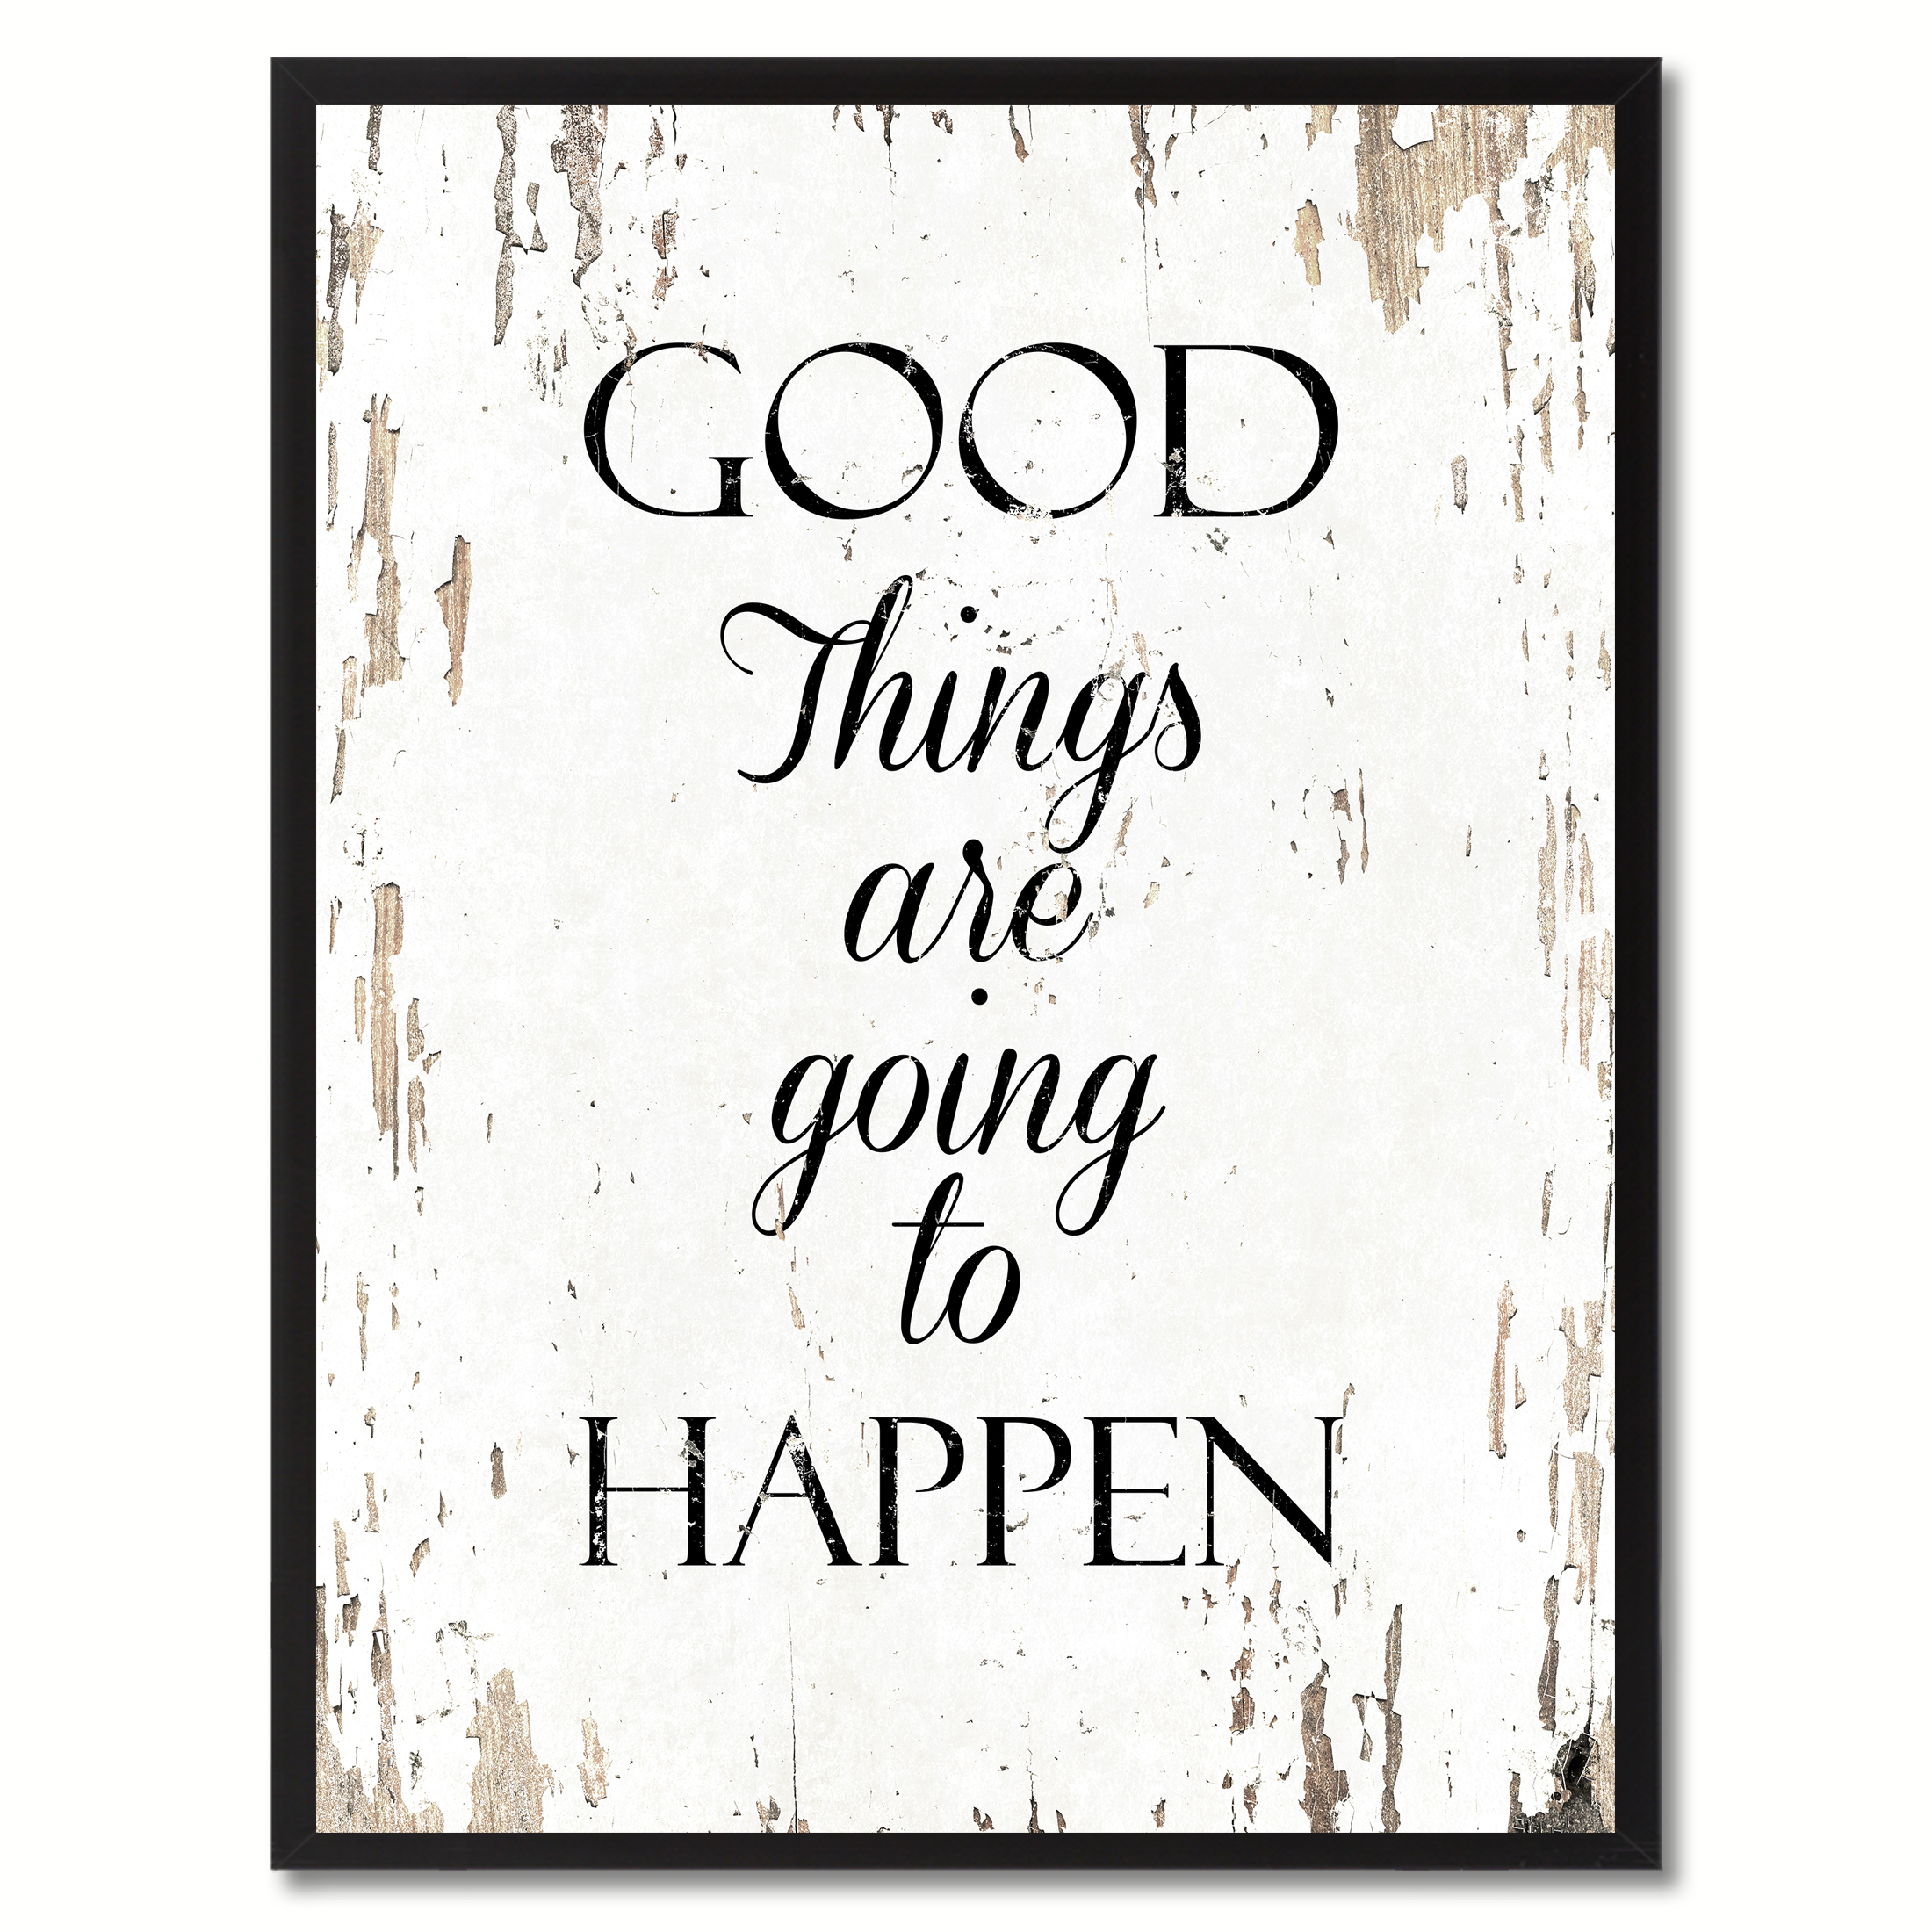 "Good Things Are Going To Happen Motivation Saying Canvas Print with Picture Frame Home Decor Wall Art Gifts - 7"" x 9\"""